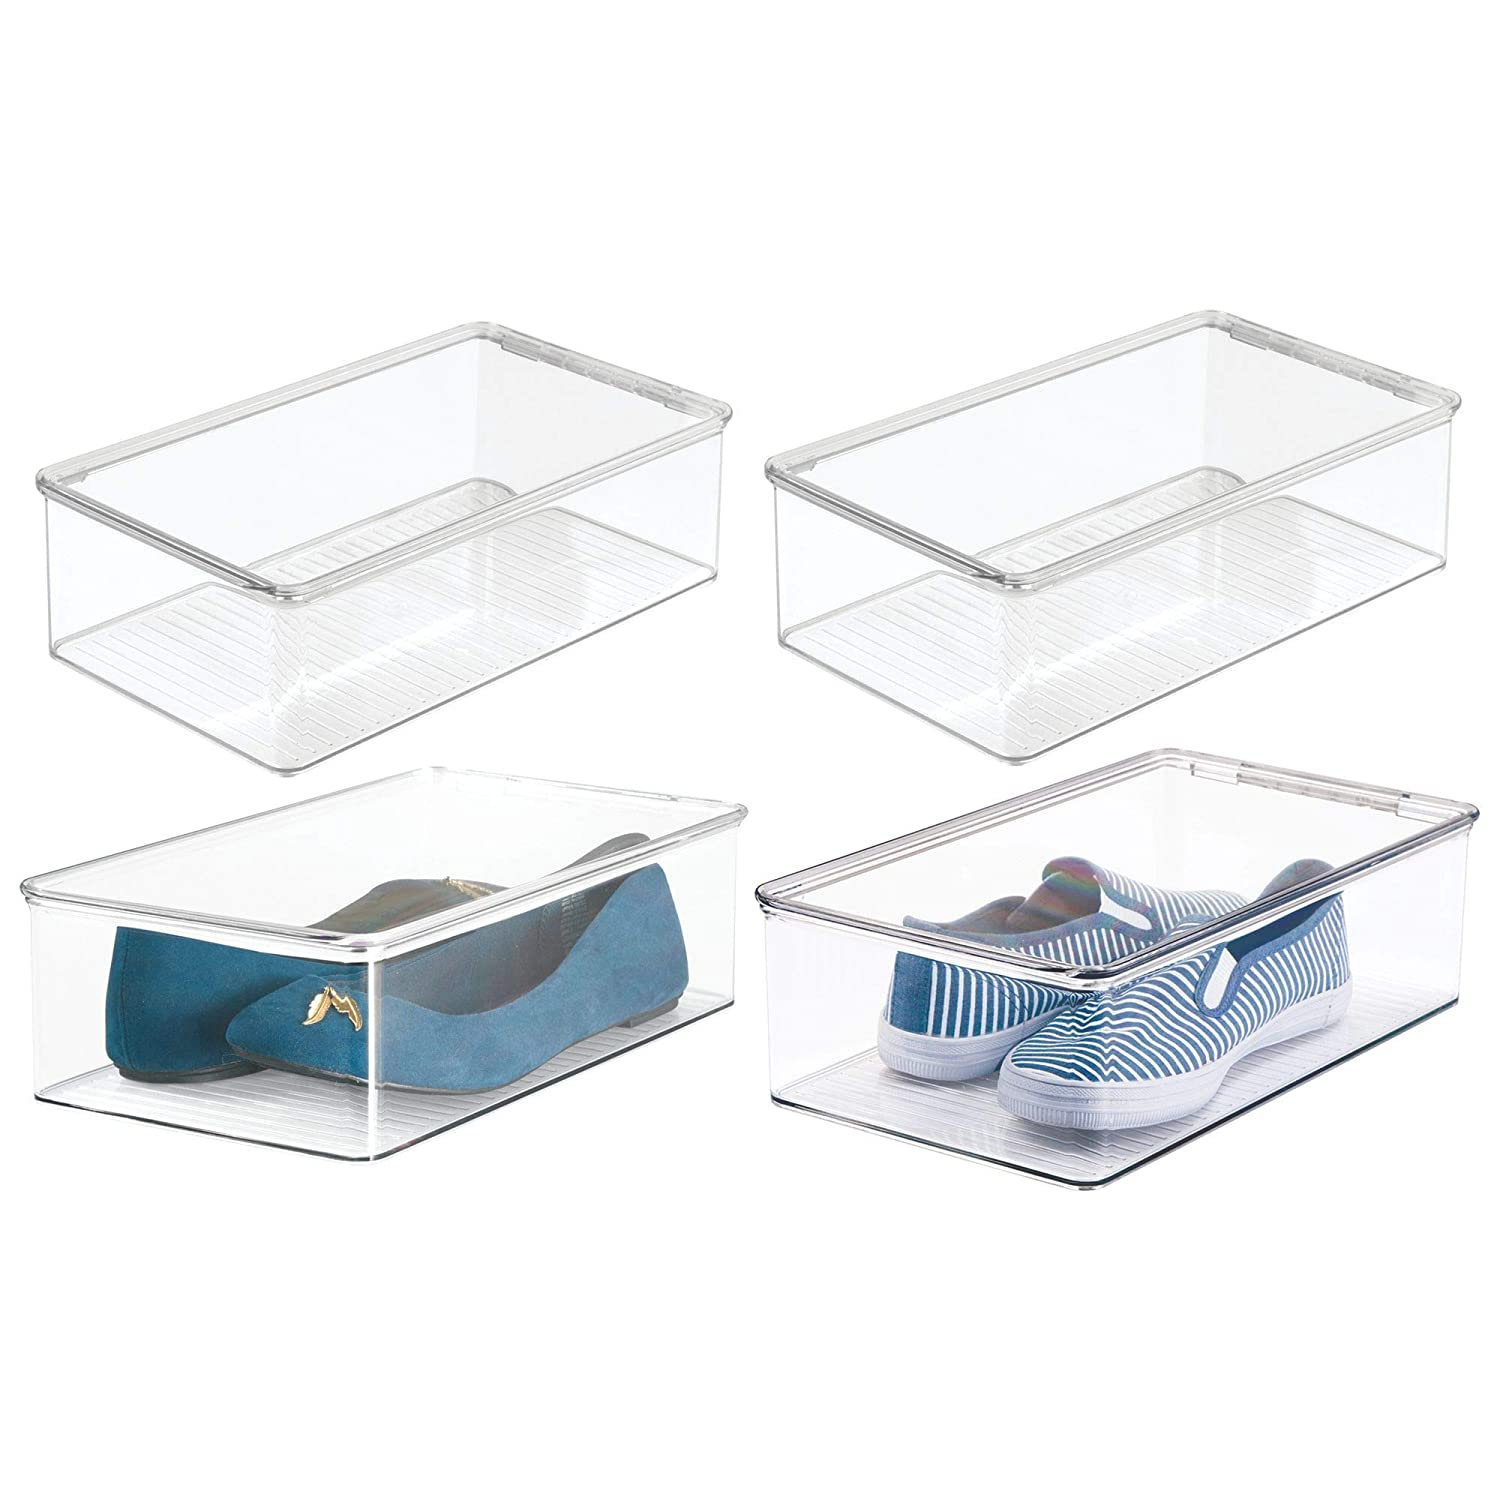 mDesign Stackable Plastic Closet Shelf Shoe Storage Organizer Box with Lid for Mens, Womens, Kids Sandals, Flats, Sneakers - 4 Pack - Clear